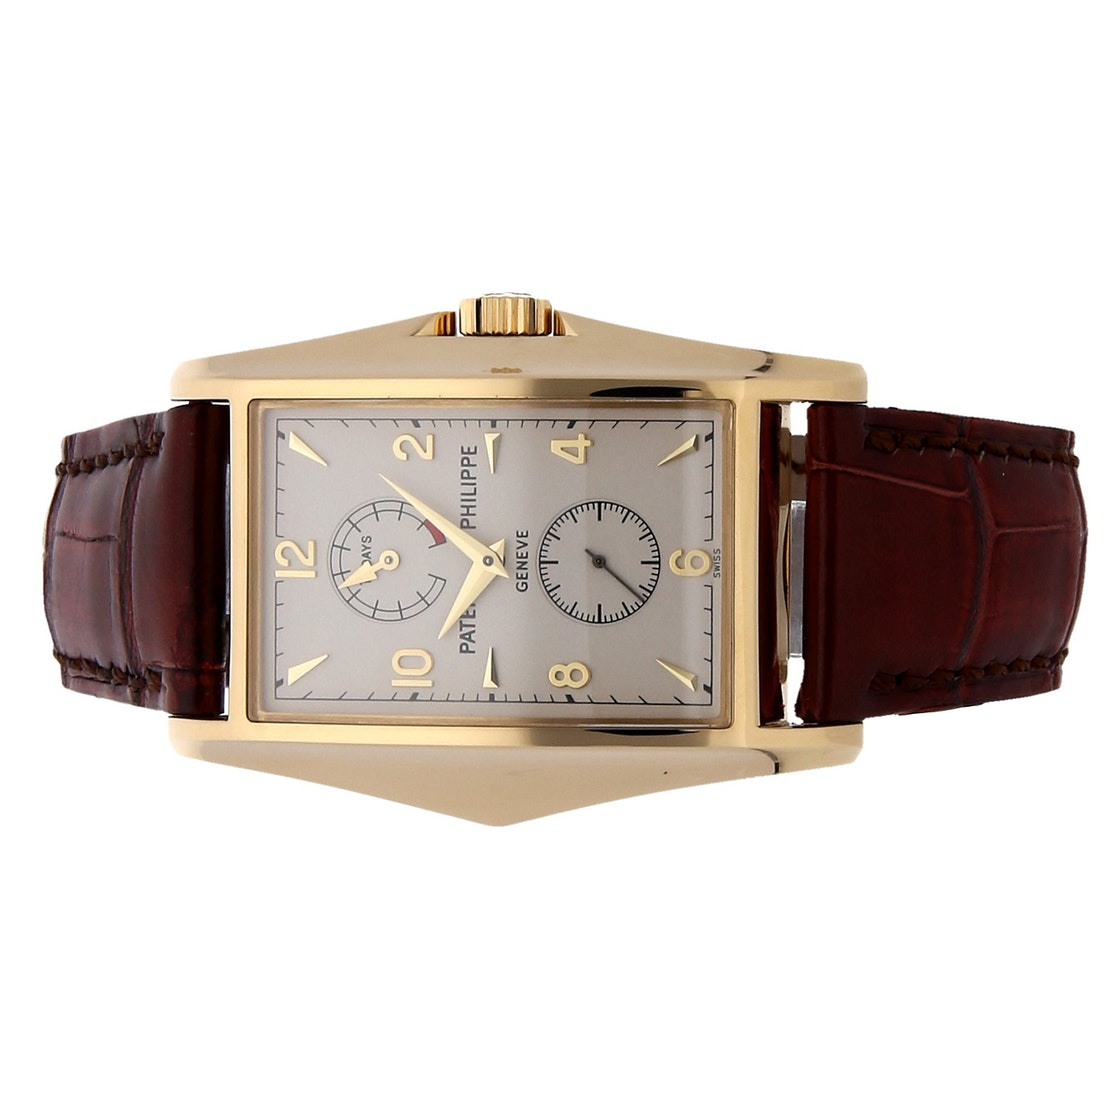 Patek Philippe Complications Gondolo 10 Day Power Reserve 5100J-001